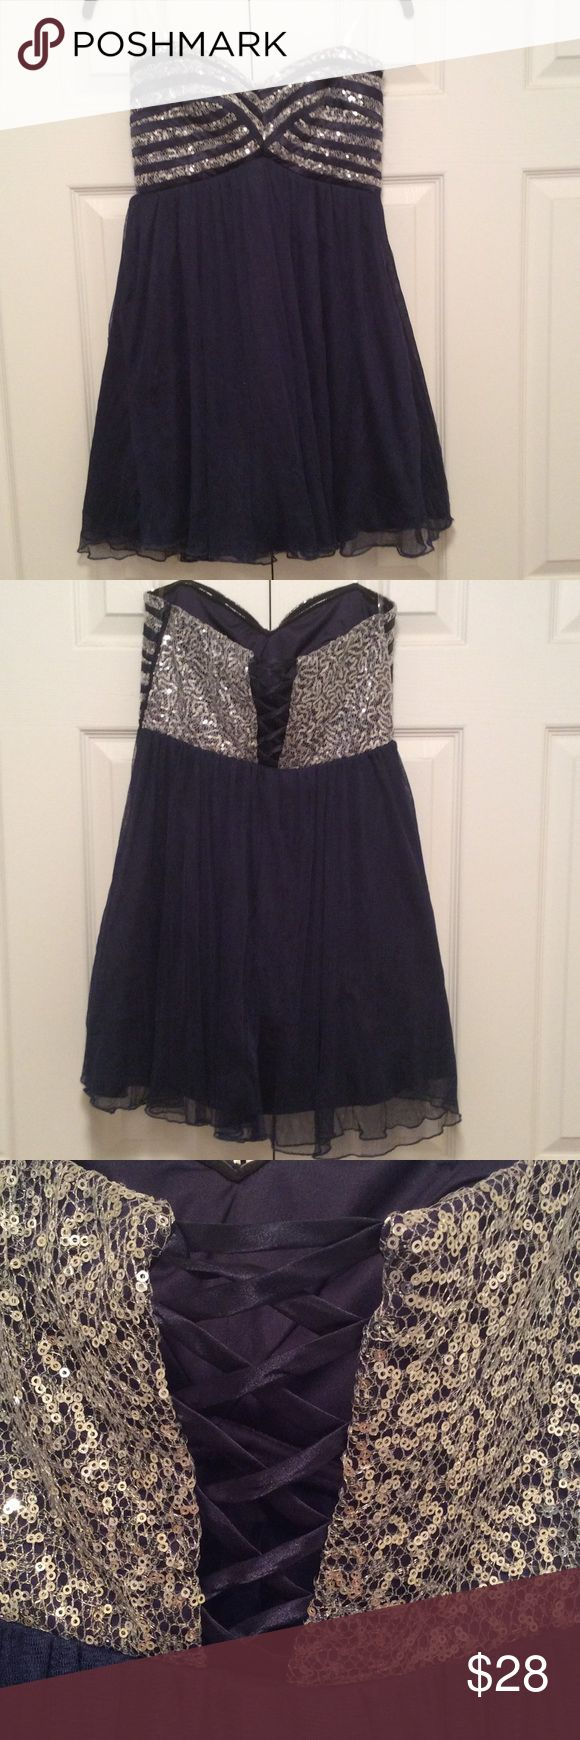 Sequin navy blue prom dress size 7 Jr strapless Sequin navy blue prom dress size 7 juniors worn once excellent condition corset back, strapless Sequin Hearts Dresses Prom